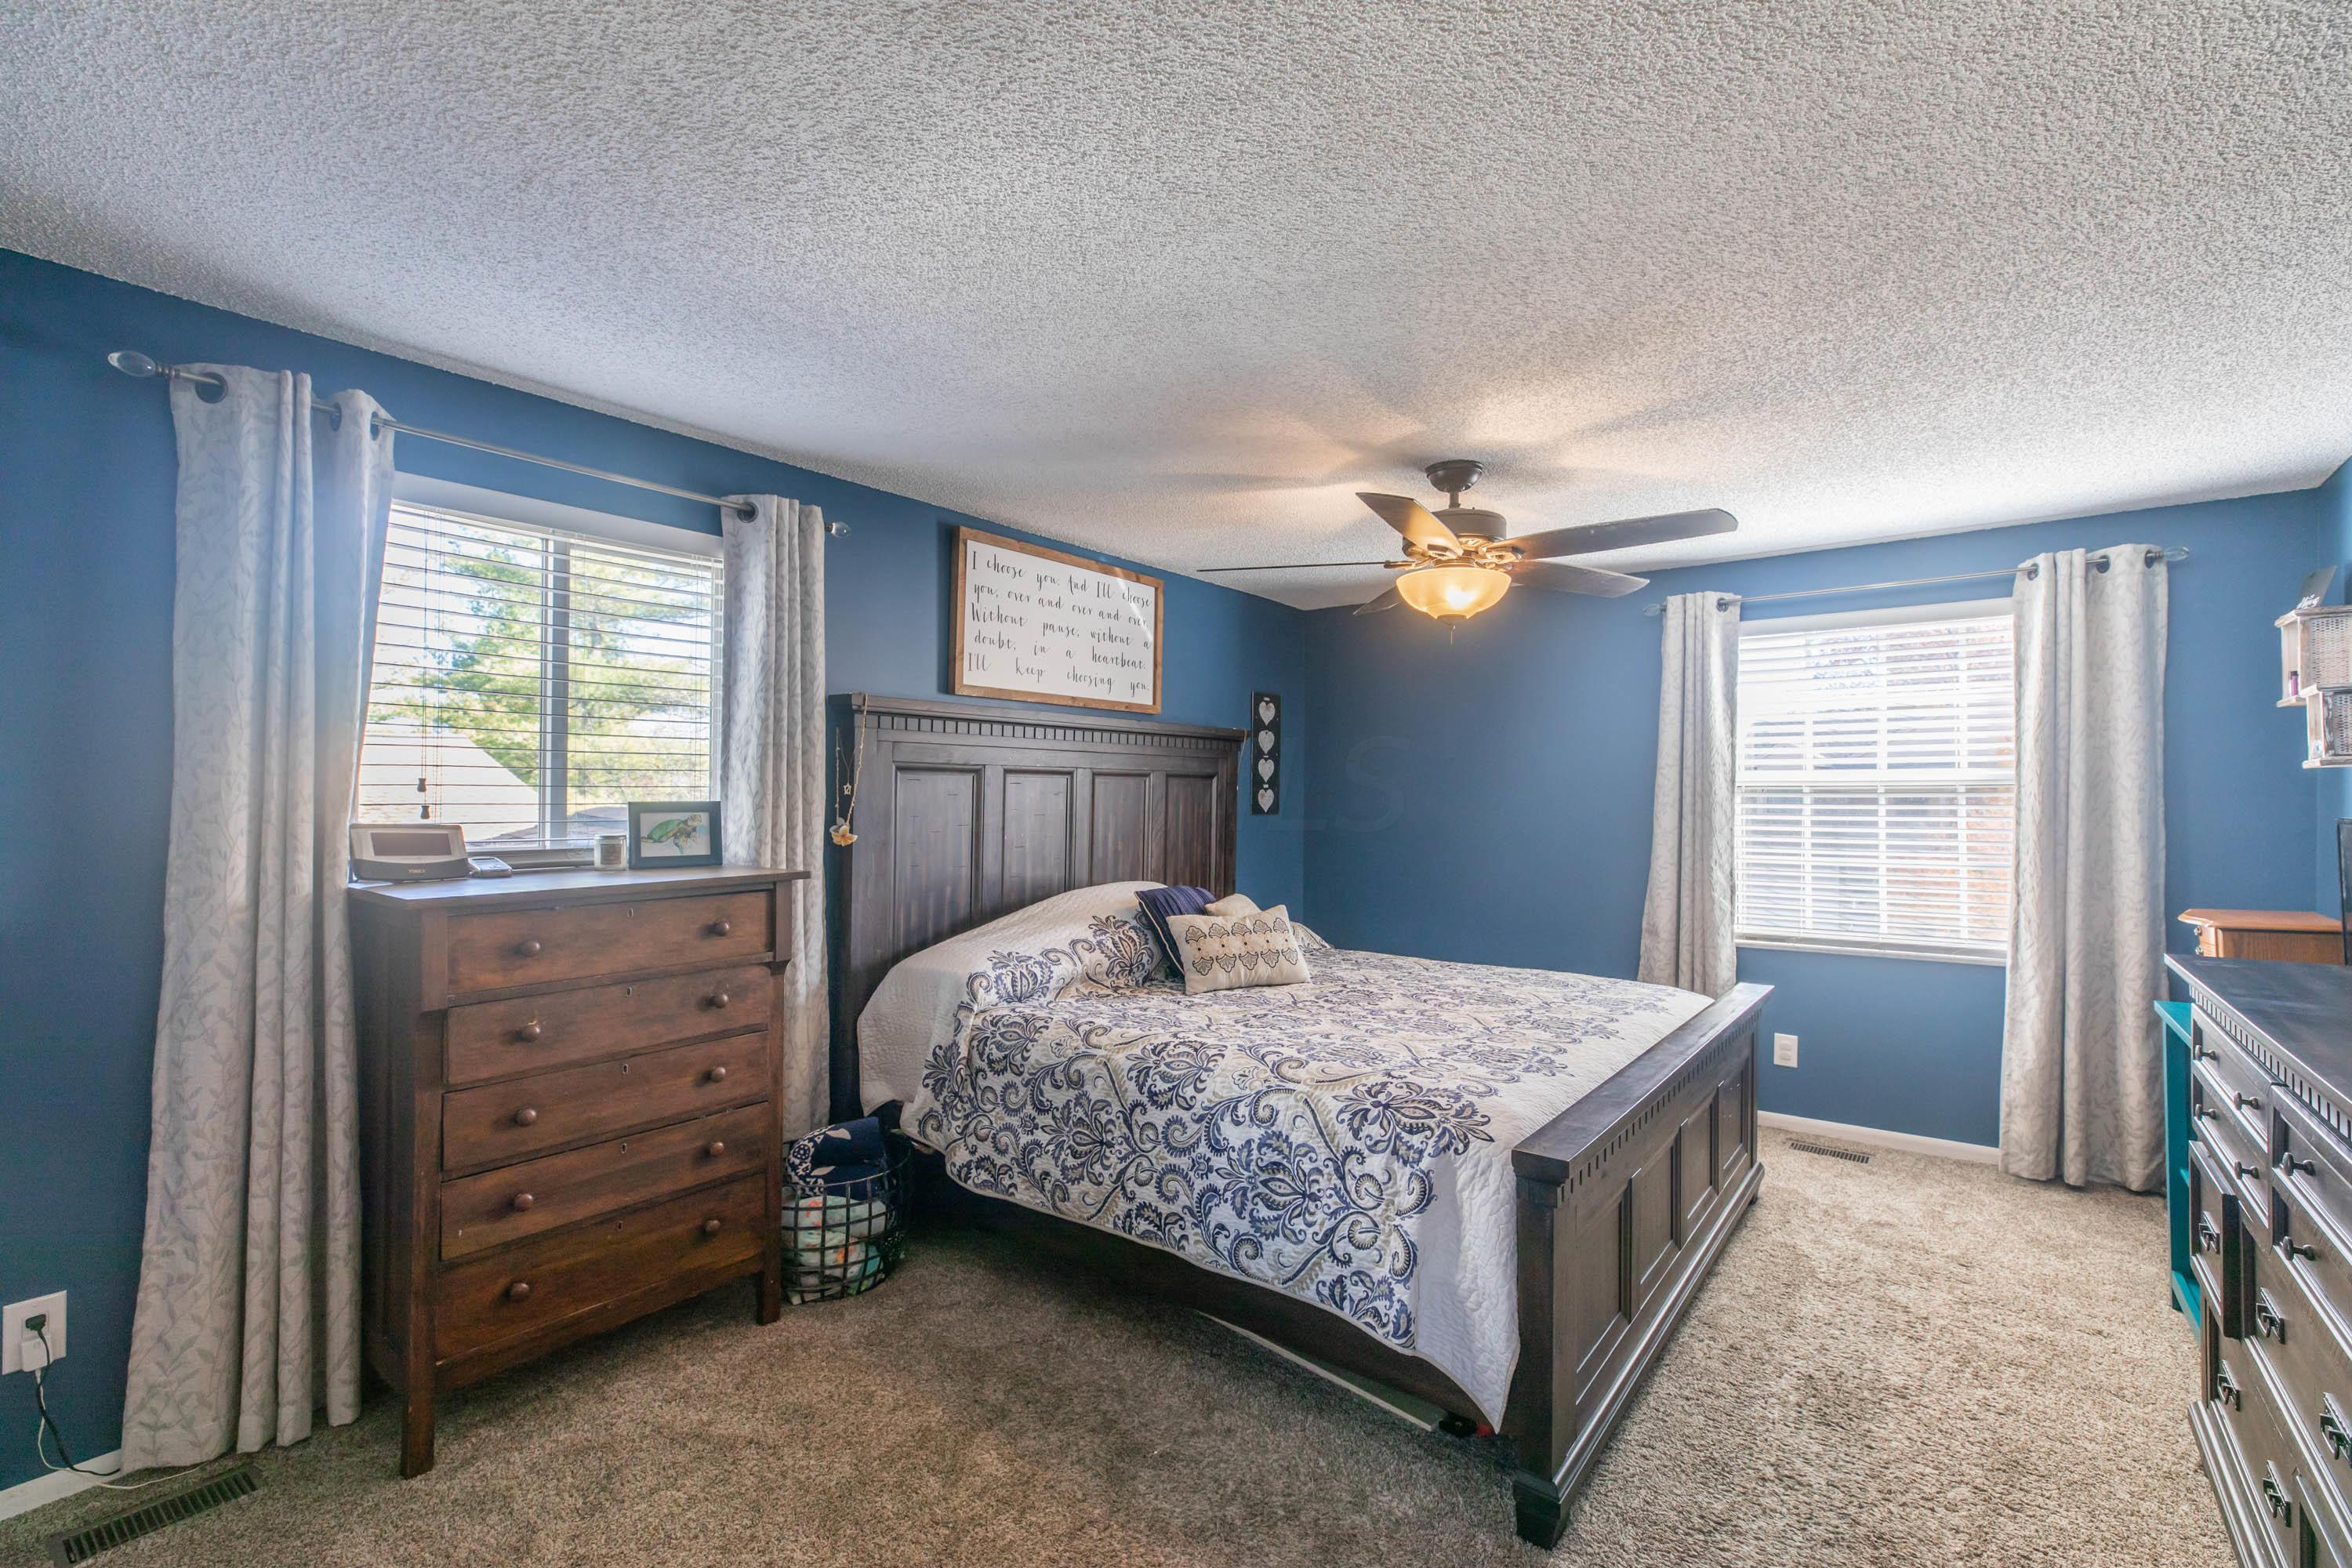 7493 Gardenview Place, Dublin, Ohio 43016, 4 Bedrooms Bedrooms, ,3 BathroomsBathrooms,Residential,For Sale,Gardenview,220039732